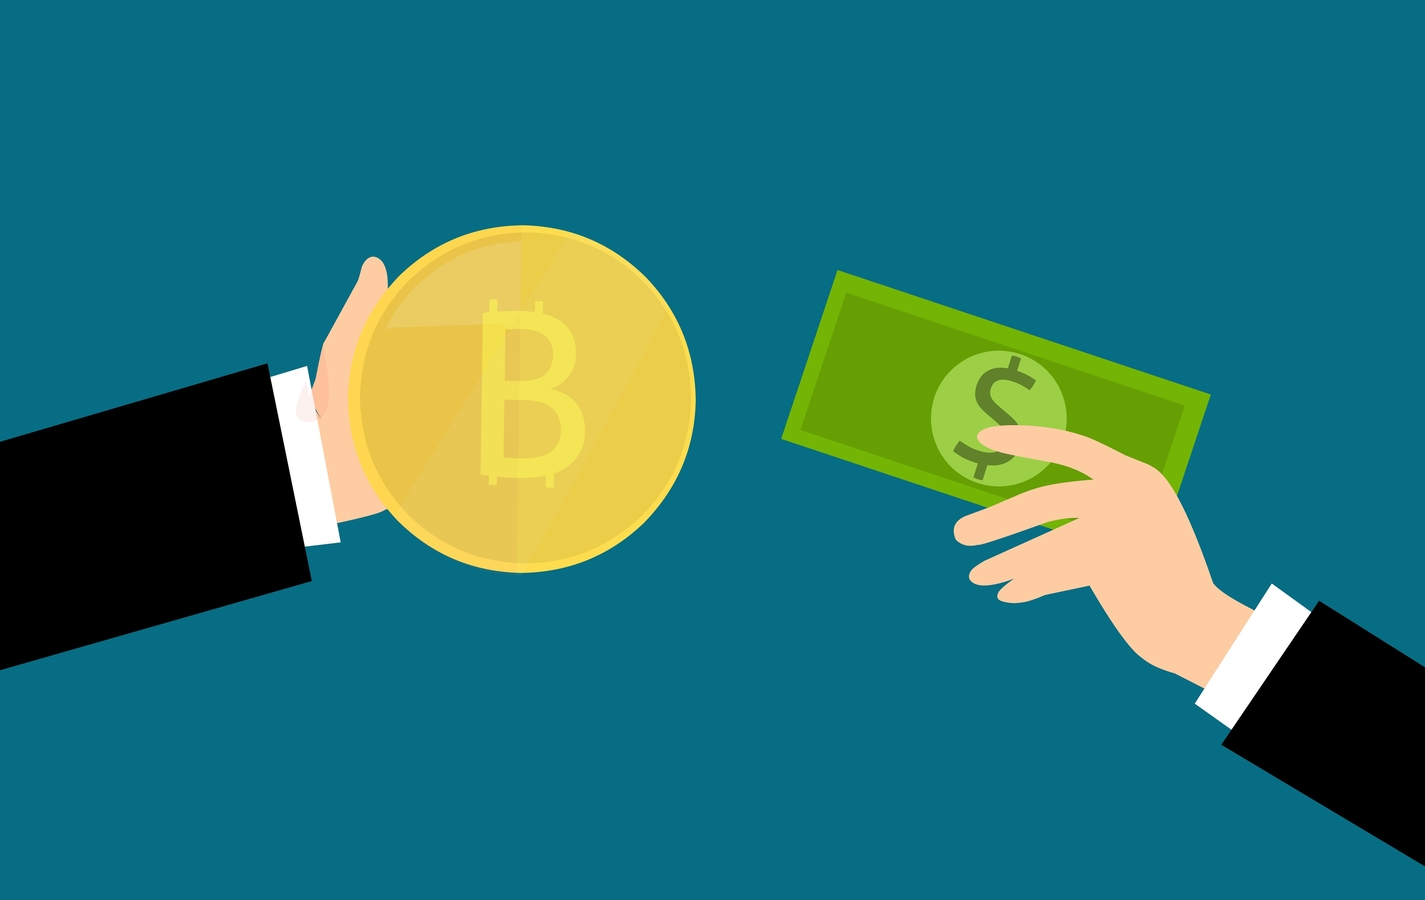 Bitcoin vs Bitcoin Cash - How Bitcoin Cash is different from Bitcoin?